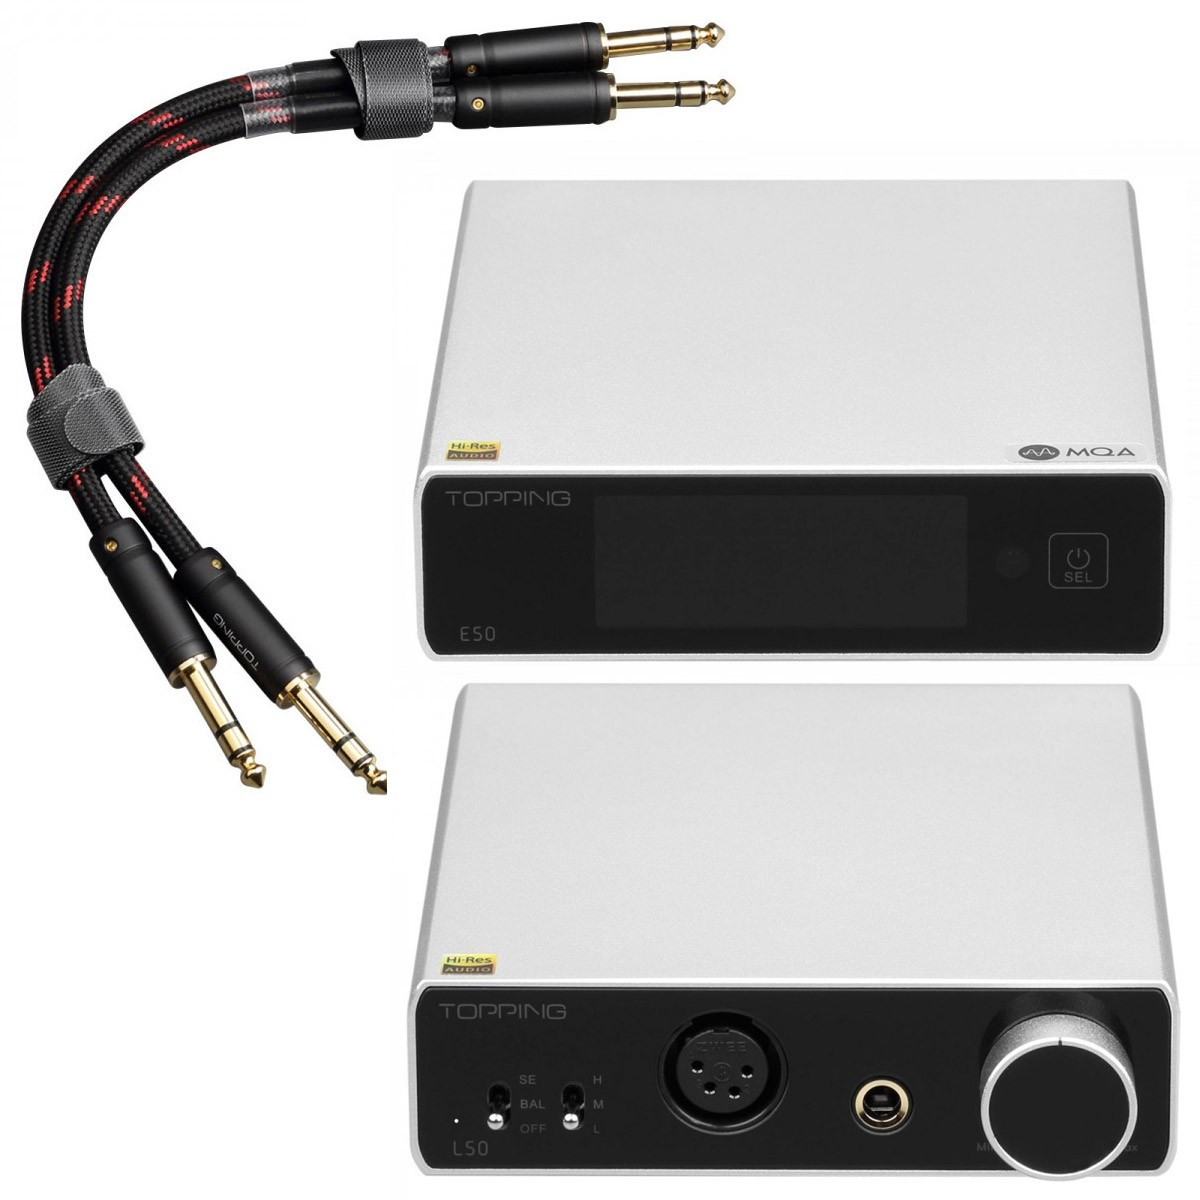 Pack Topping E50 Balanced DAC + L50 Balanced Headphone Amplifier + TCT1 Jack 6.35mm Cables Silver